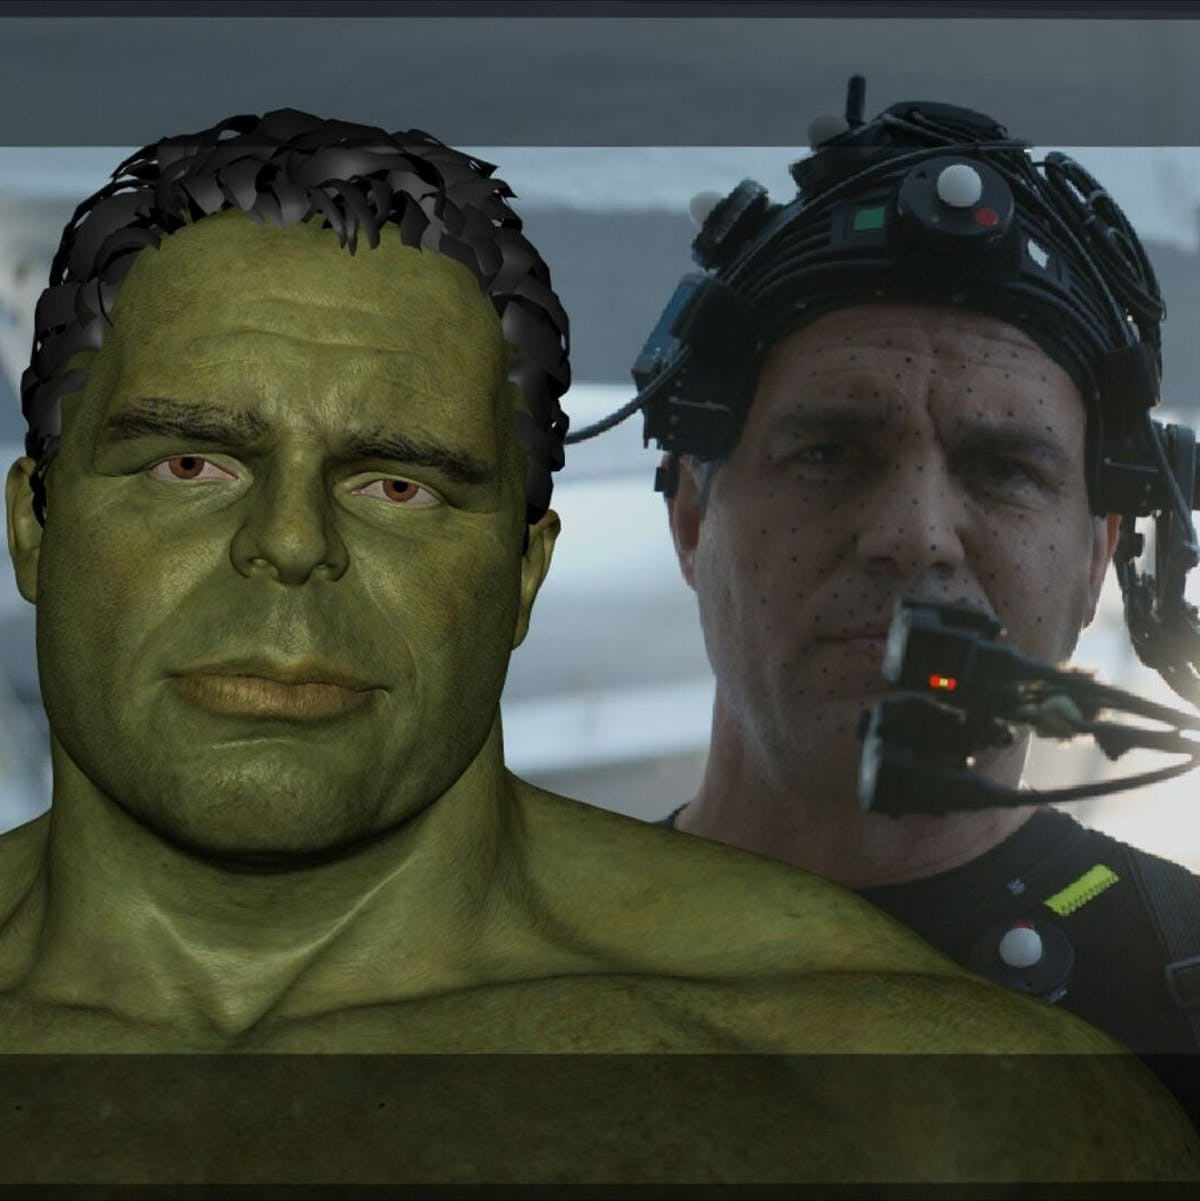 Marvel used an old Ruffalo interview to create Professor Hulk in 'Endgame'